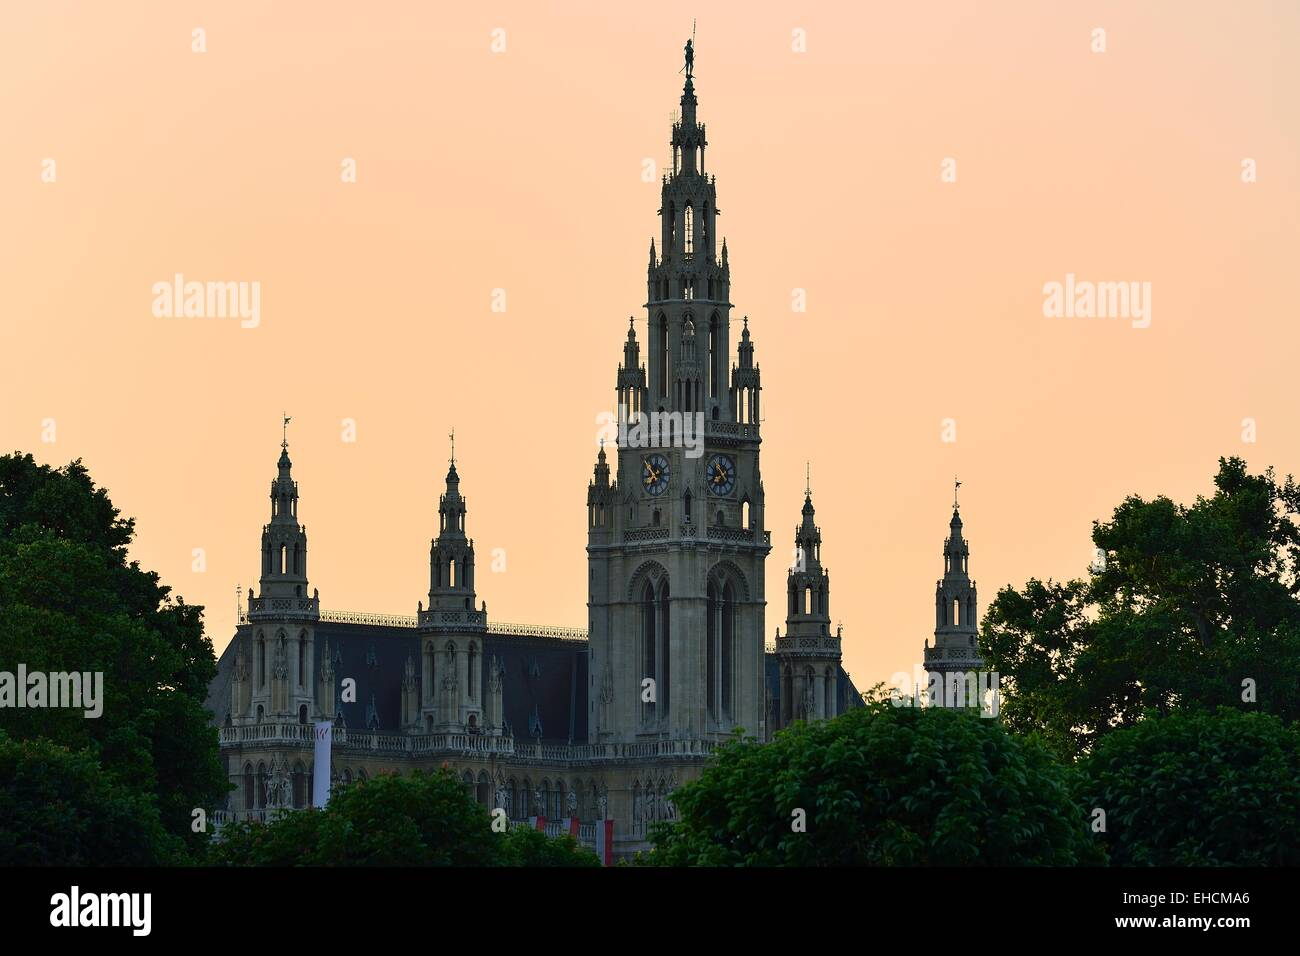 City Hall in the evening light, Innere Stadt district, Vienna, Austria - Stock Image